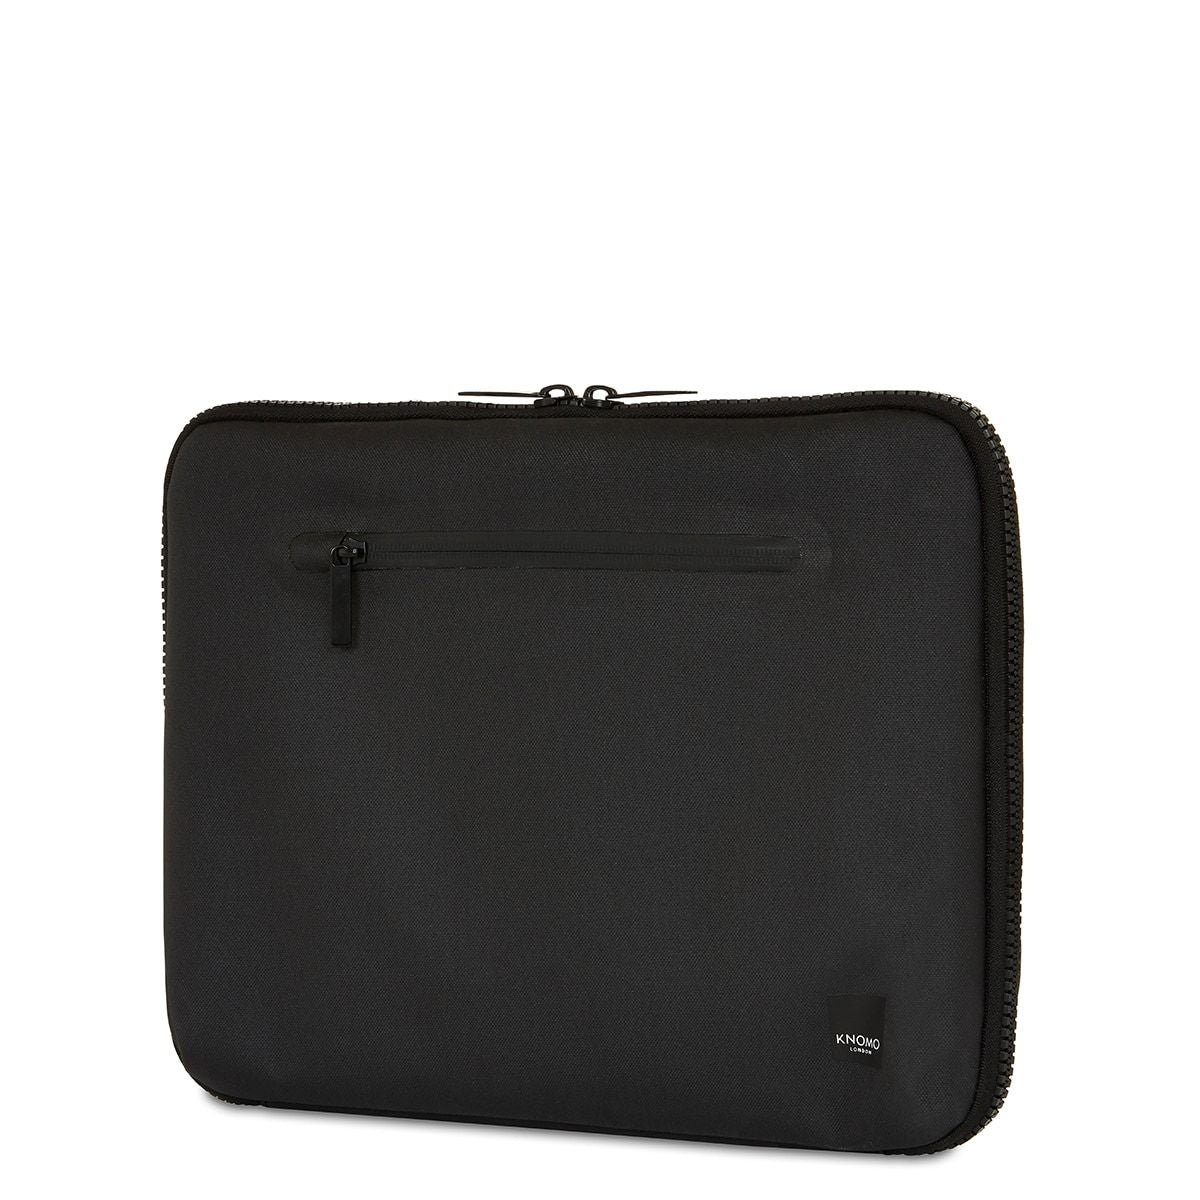 "Thames Knomad Organiser Tech Organiser for Work - 13"" -  13"" 